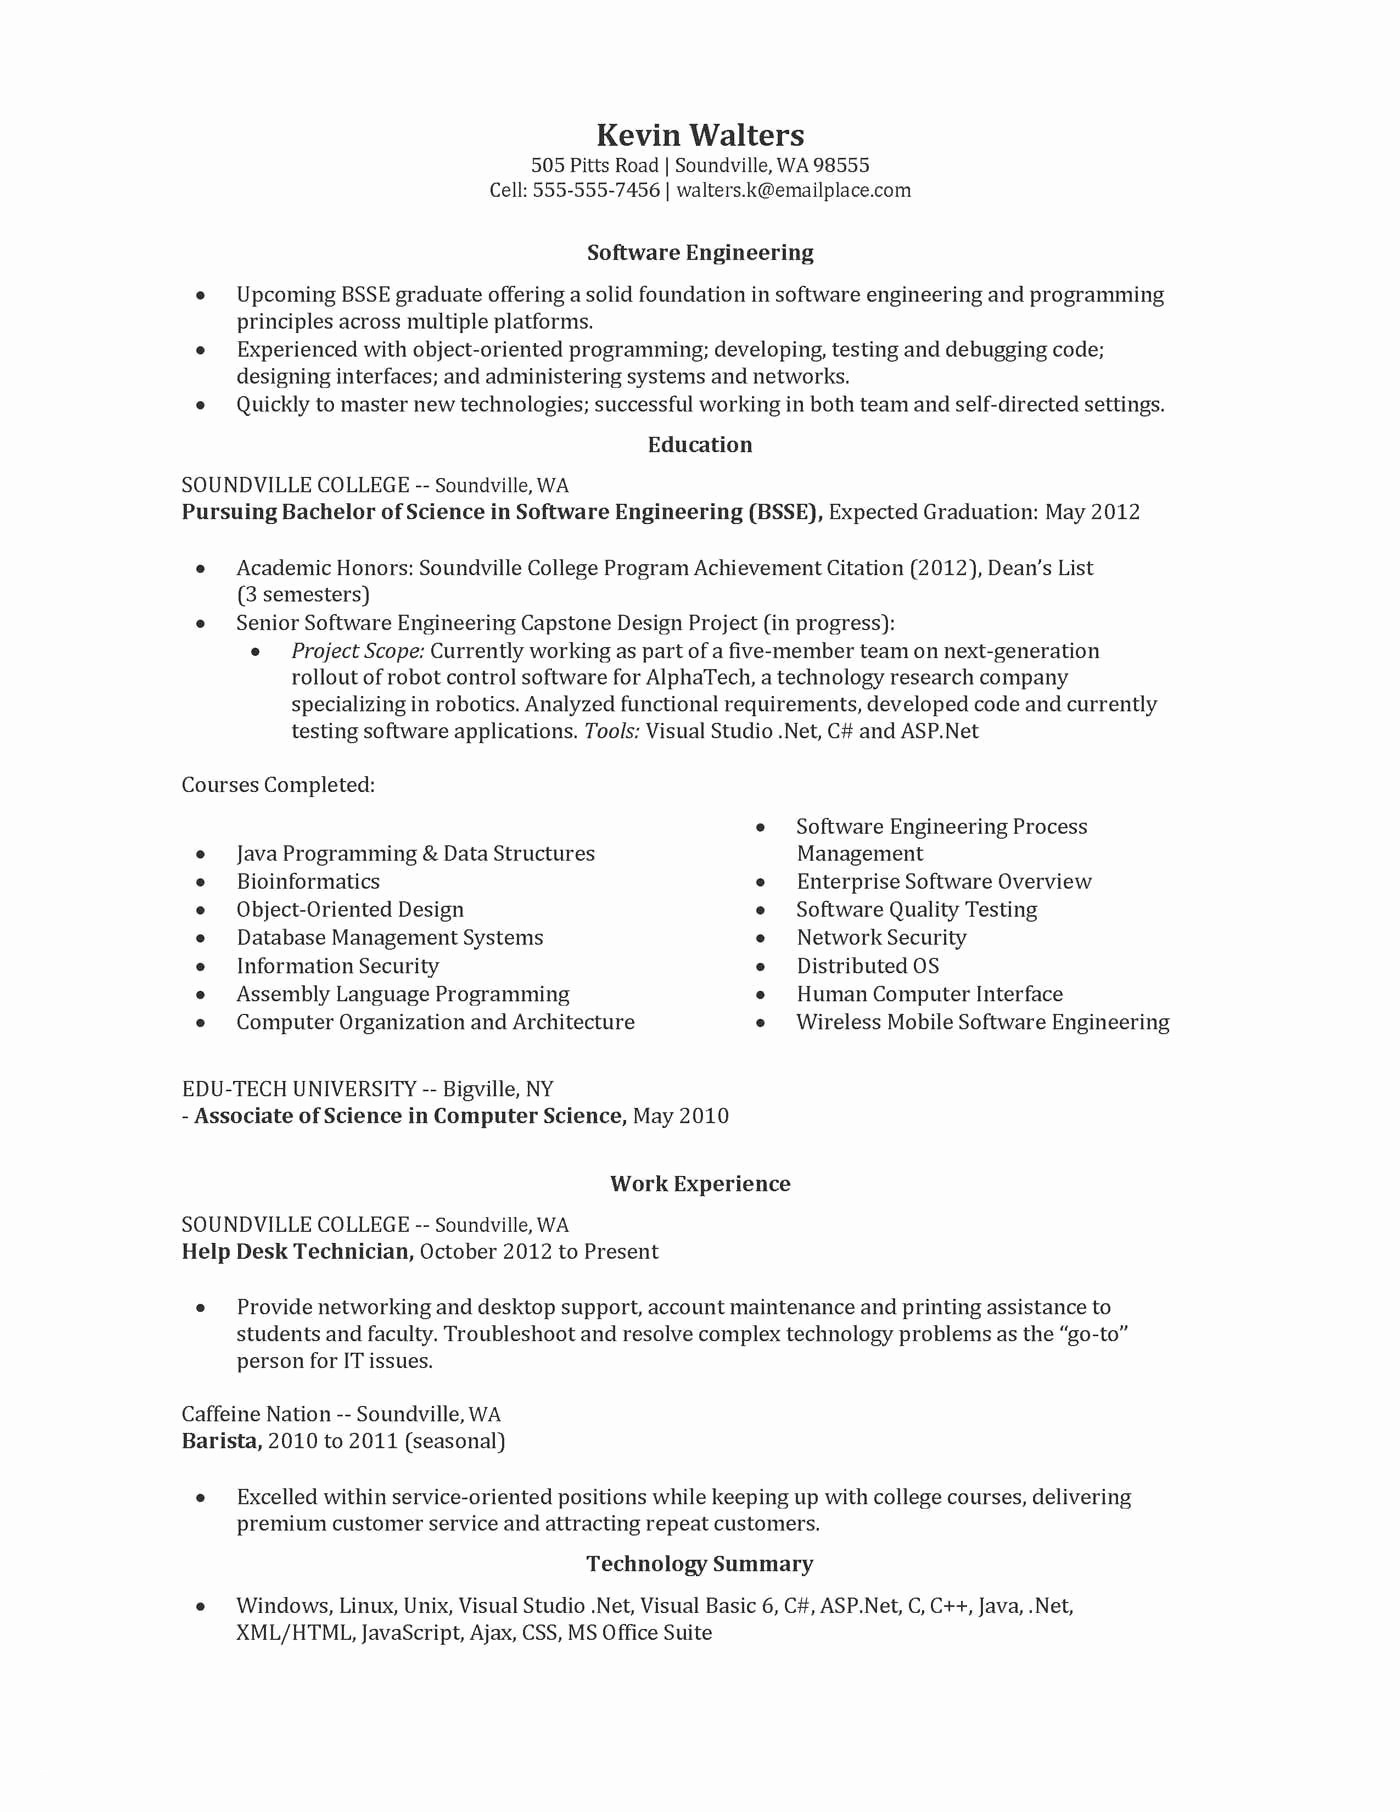 Program Introduction Letter Template - Resume Template for College Application Unique Lpn Resume Sample New